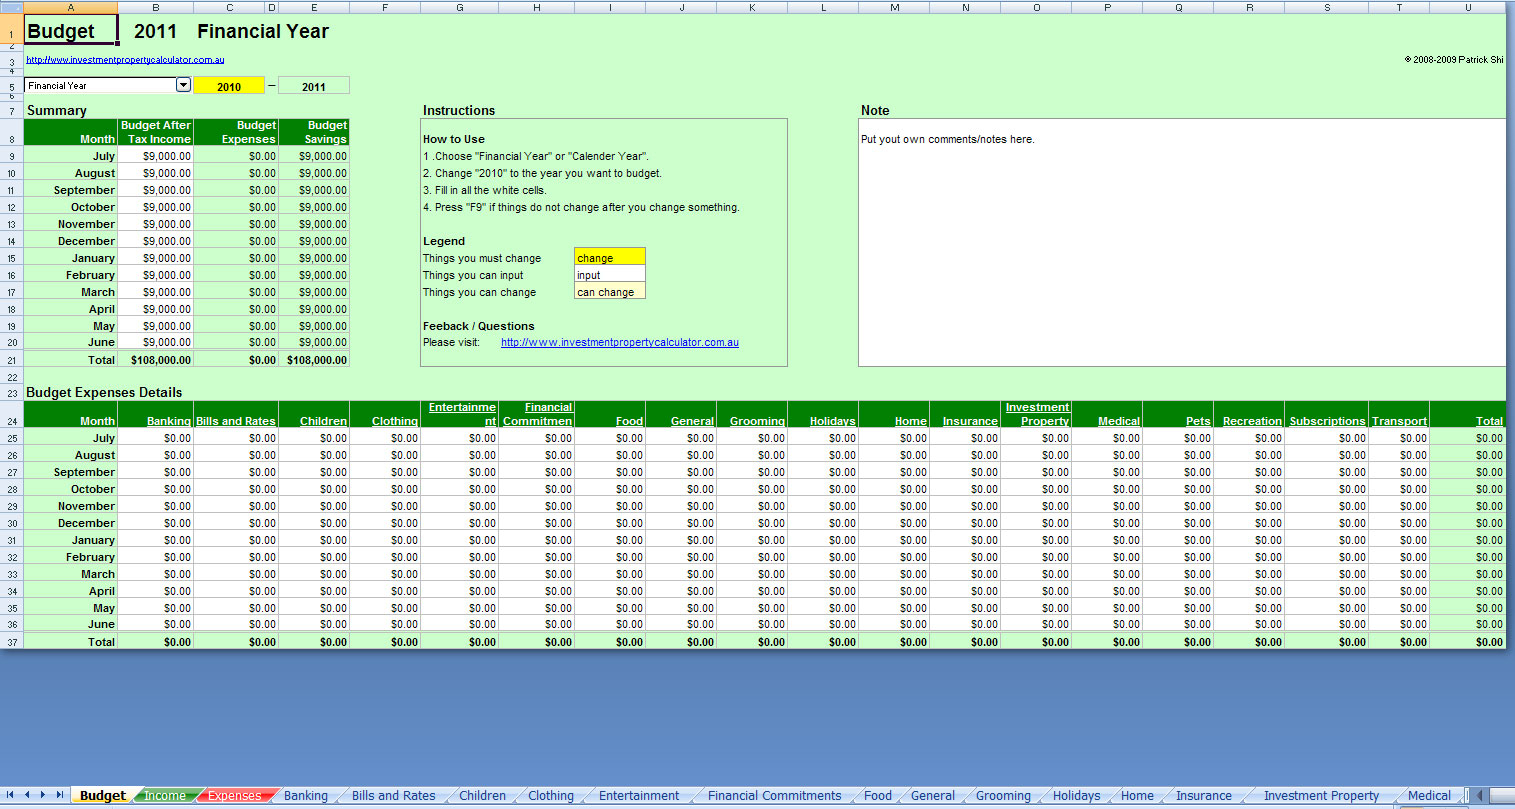 Budget Excel Spreadsheet Free Download For Financial Planning Spreadsheet Free Plan Template Excel Download